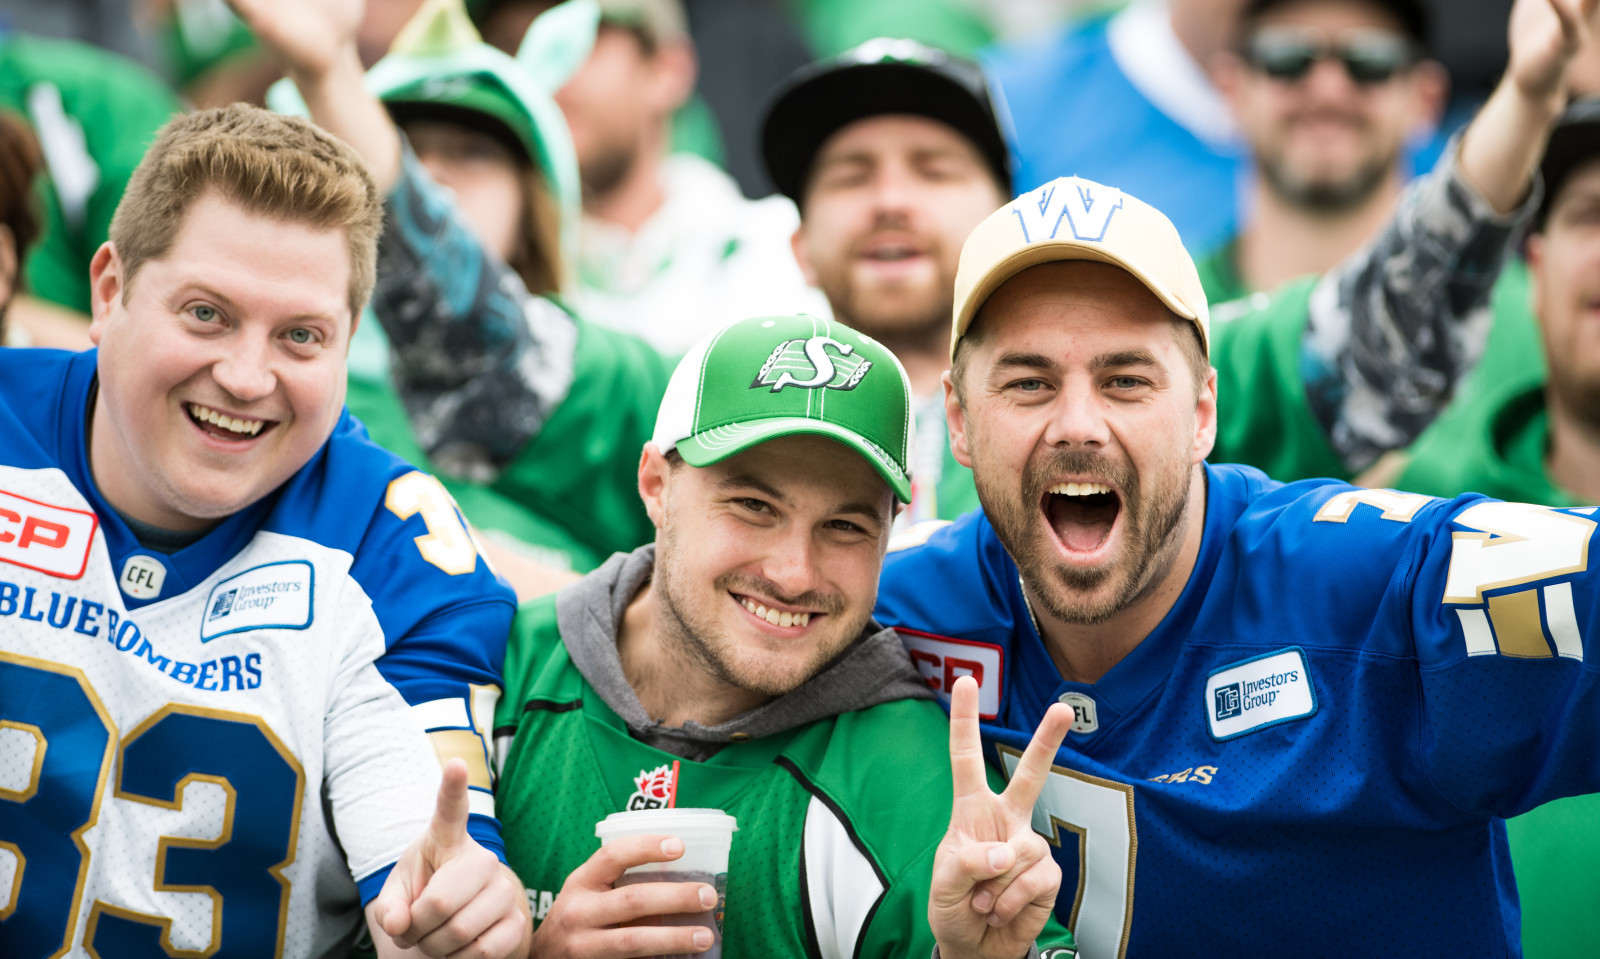 CFL fans during the Labour Day game between the Saskatchewan Roughriders and the Winnipeg Blue Bombers at Mosaic Stadium in Regina, SK. Sunday, September 4, 2016. (Photo: Johany Jutras)